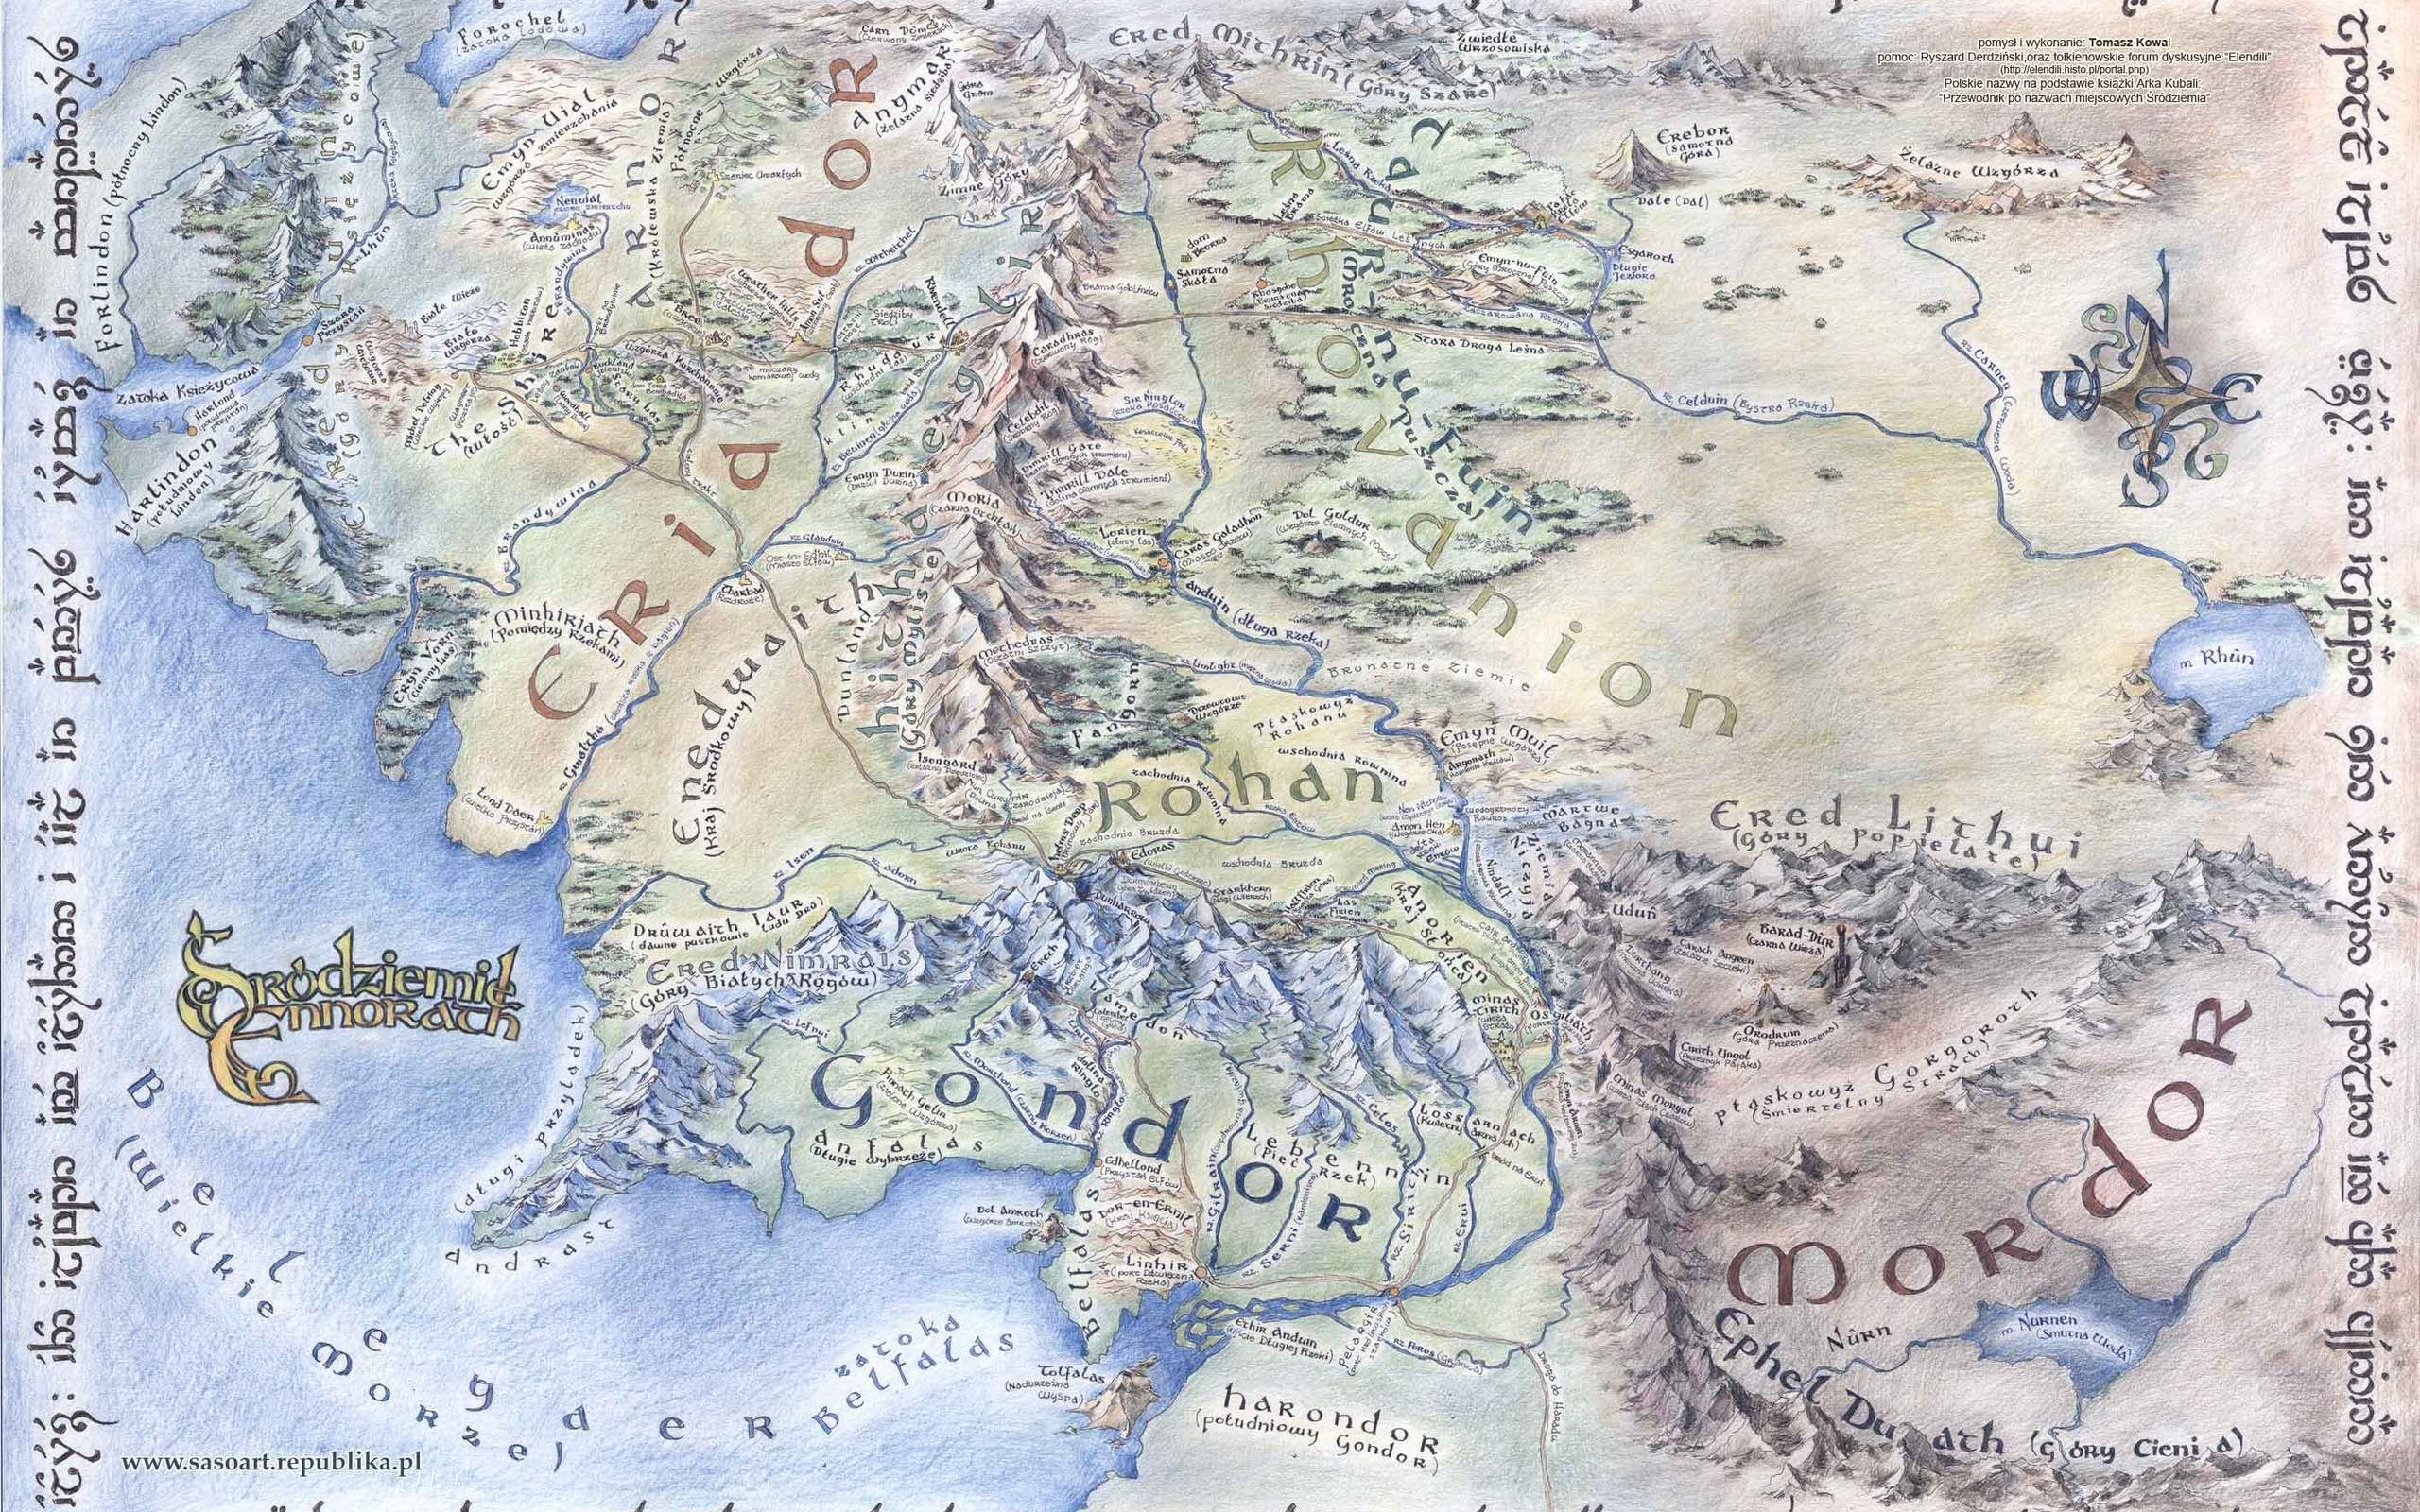 Map of middle earth wallpaper 2560x1600 original wallpaper download large detailed map of middle earth sciox Gallery